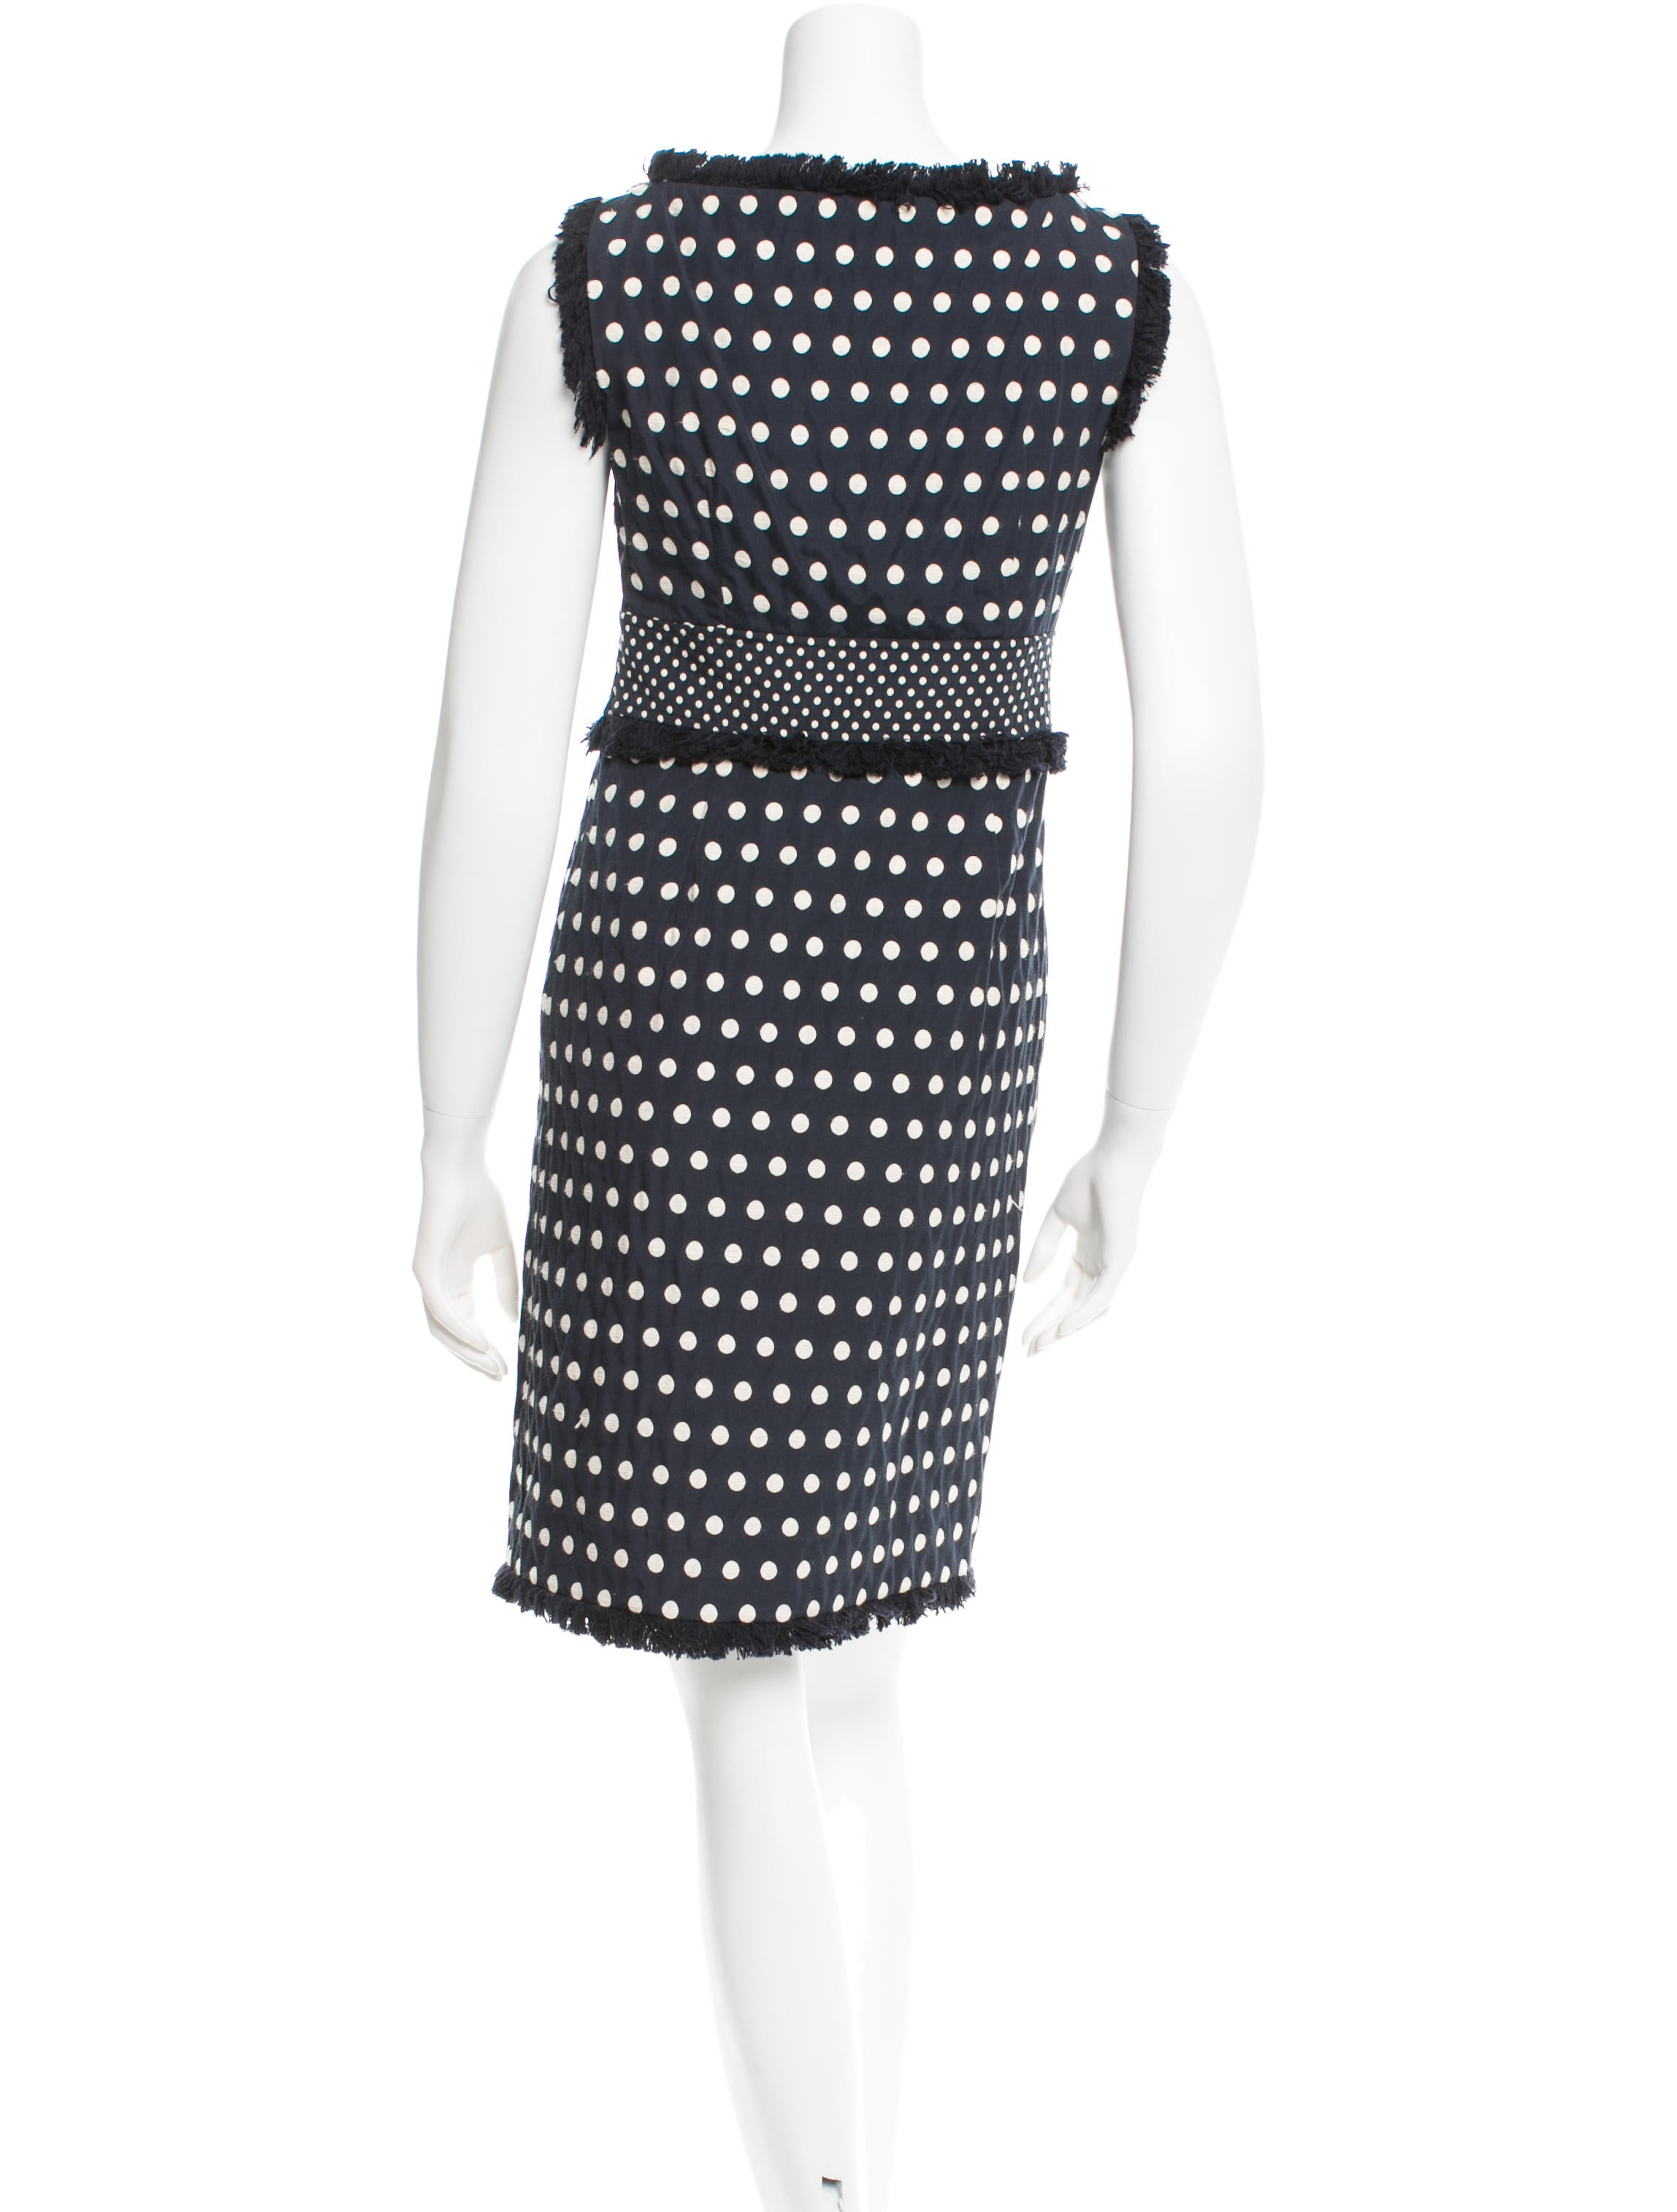 Free shipping Vintage Sleeveless Polka Dot Dress with Belt BLUE M under $ in Vintage Dresses online store. Best Sheath Mini Dress Online and Beach Maxi Dress .